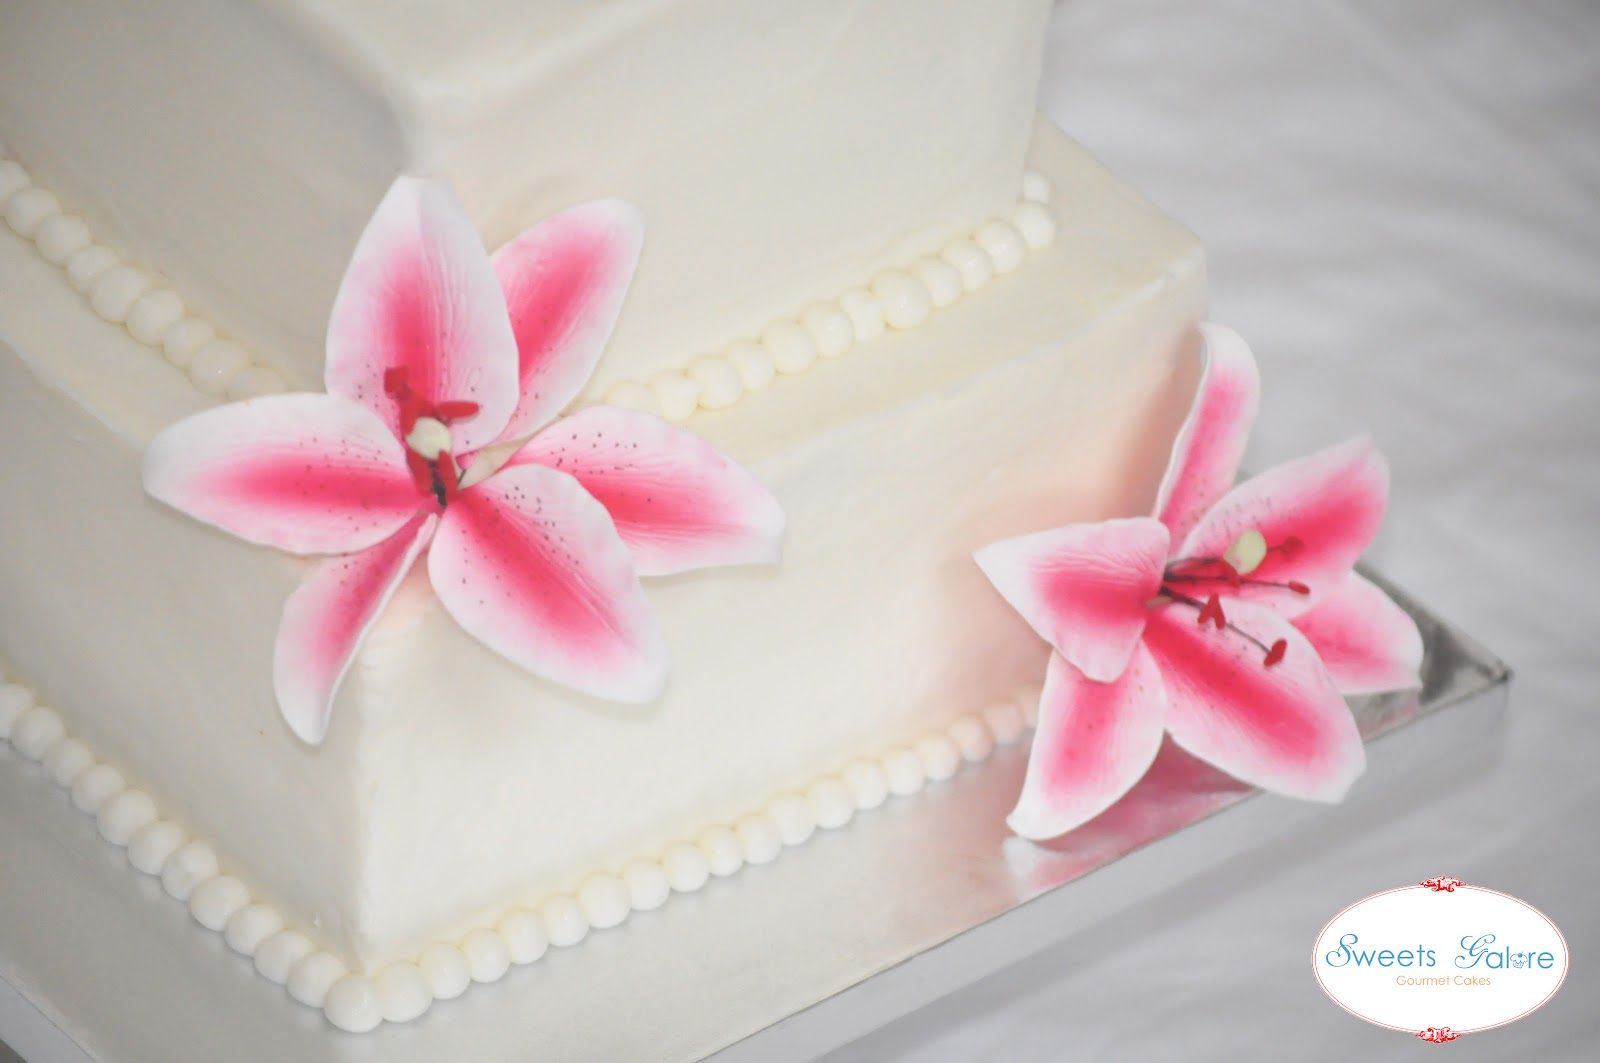 stargazer lily bouquets for weddings   images of sweets galore pink ...